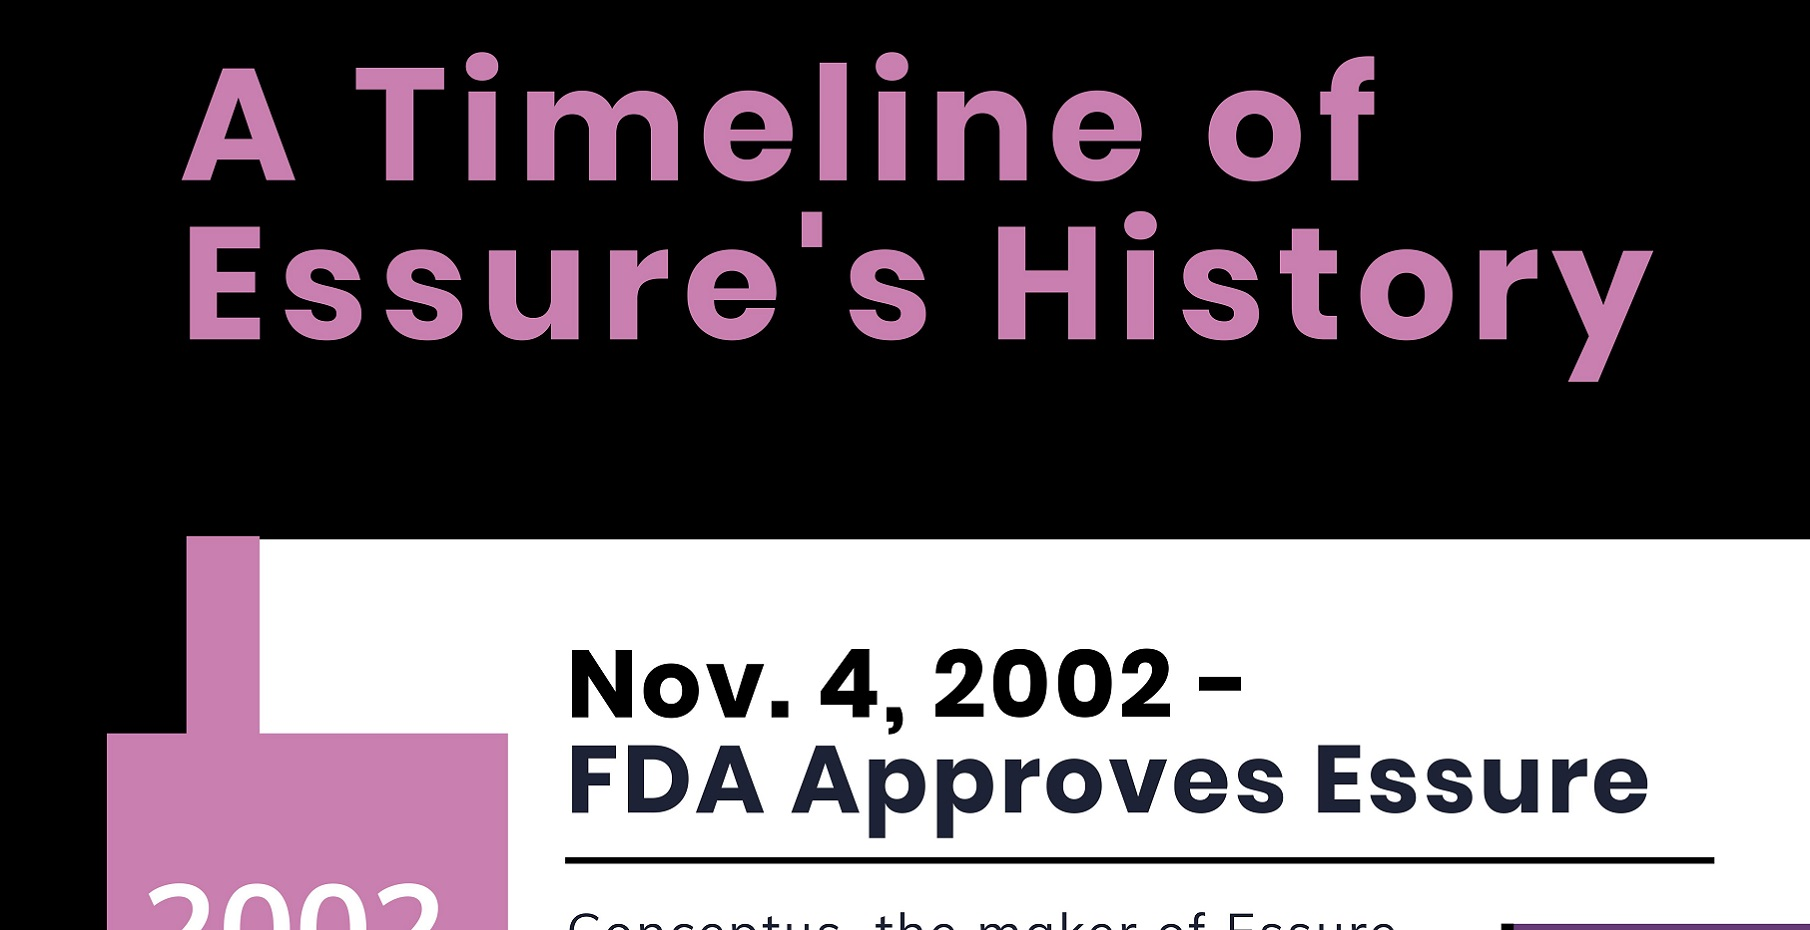 The facts and figures of Essure's problematic history.